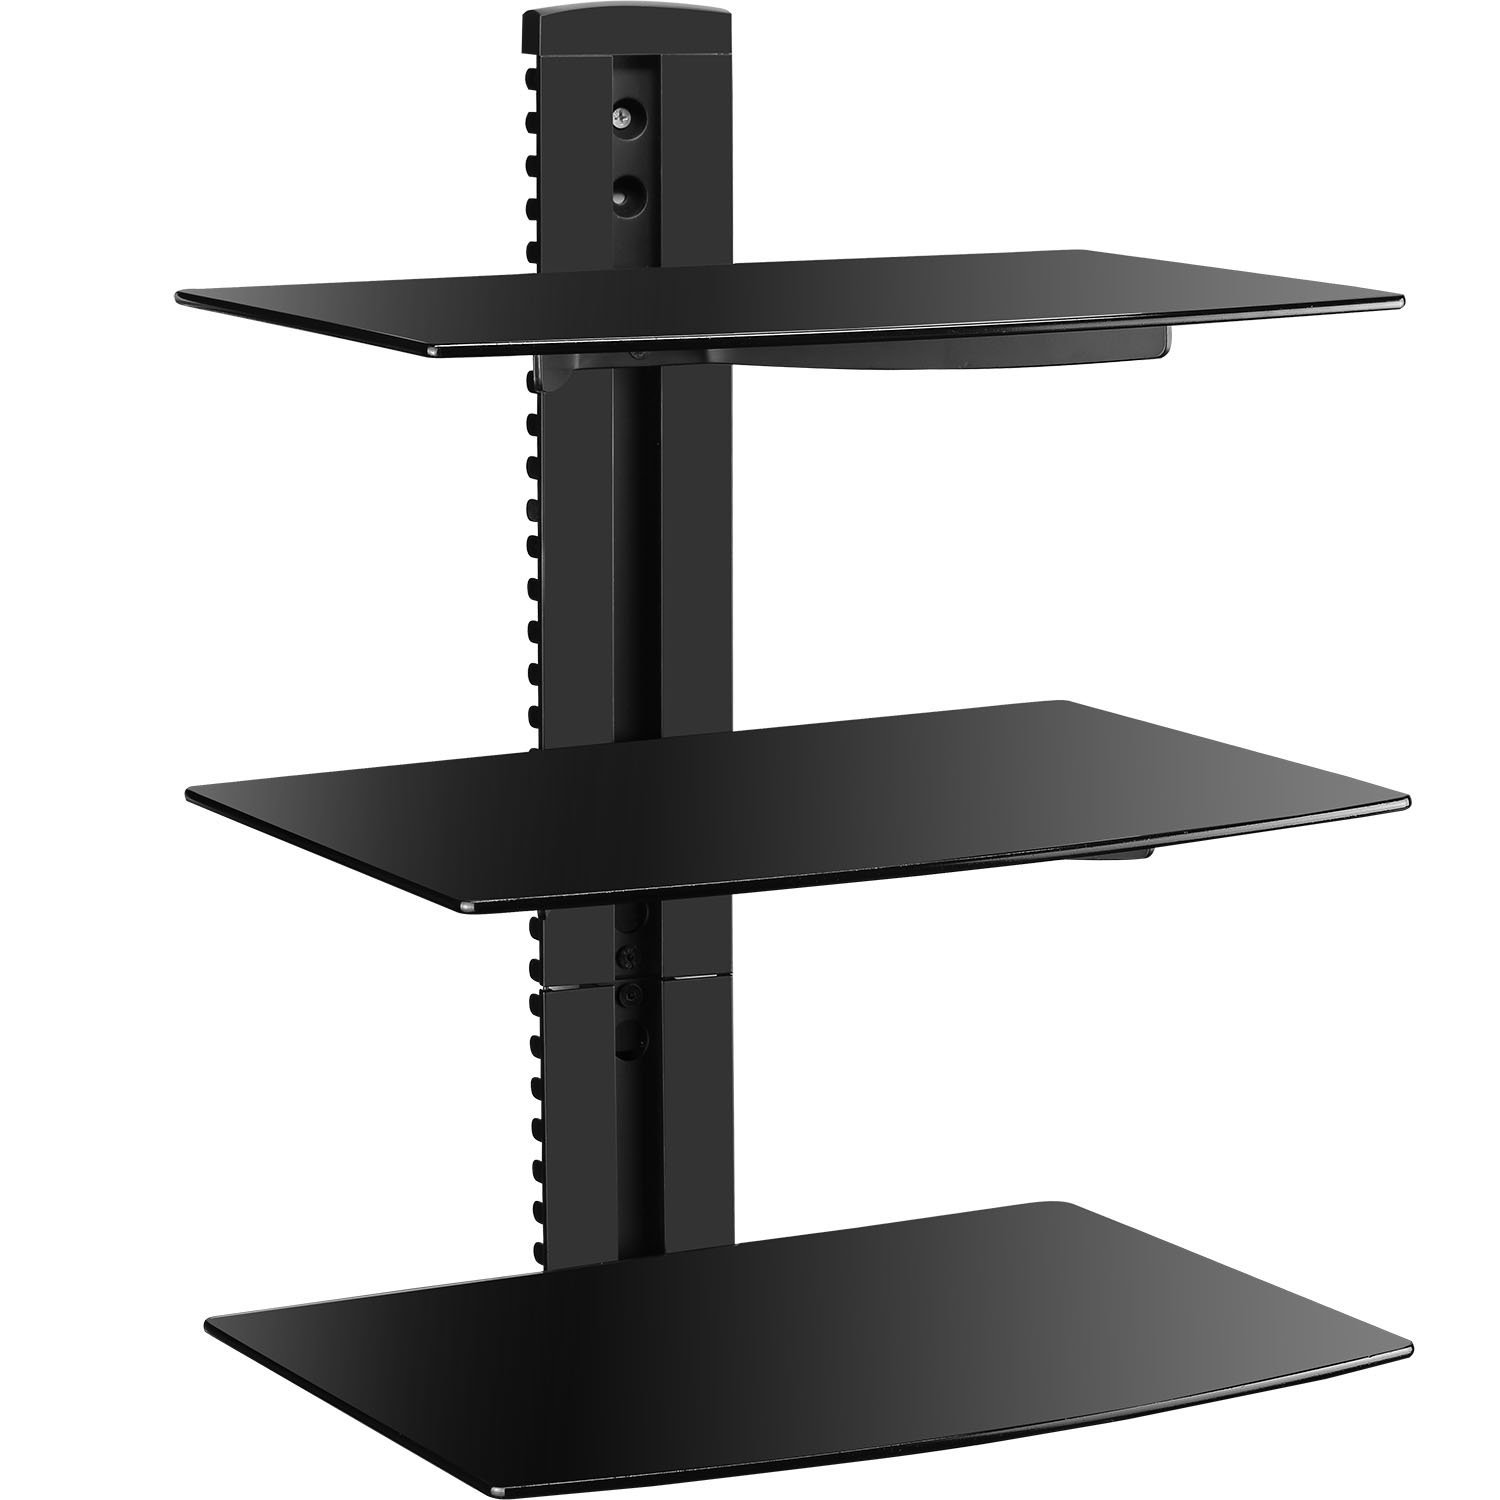 wali floating wall mounted shelf with strengthened tempered glass glasses for dvd players cable boxes games consoles accessories shelves black diy over the toilet storage